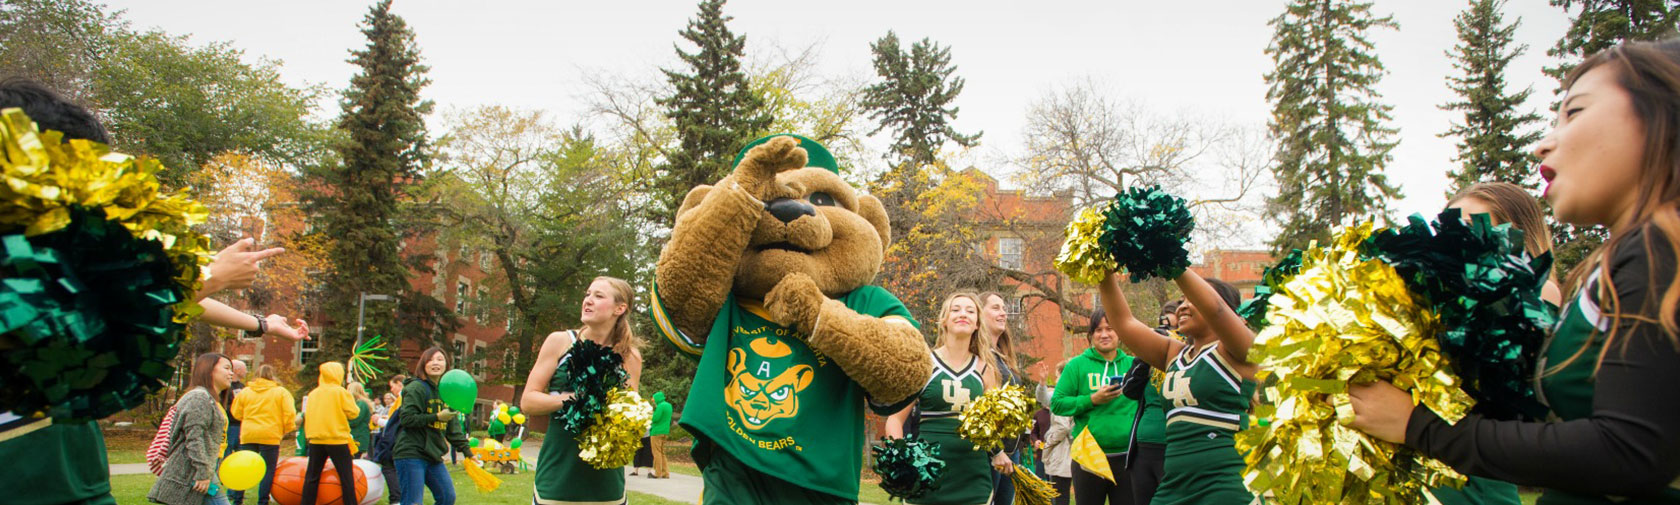 Get Your Green and Gold On